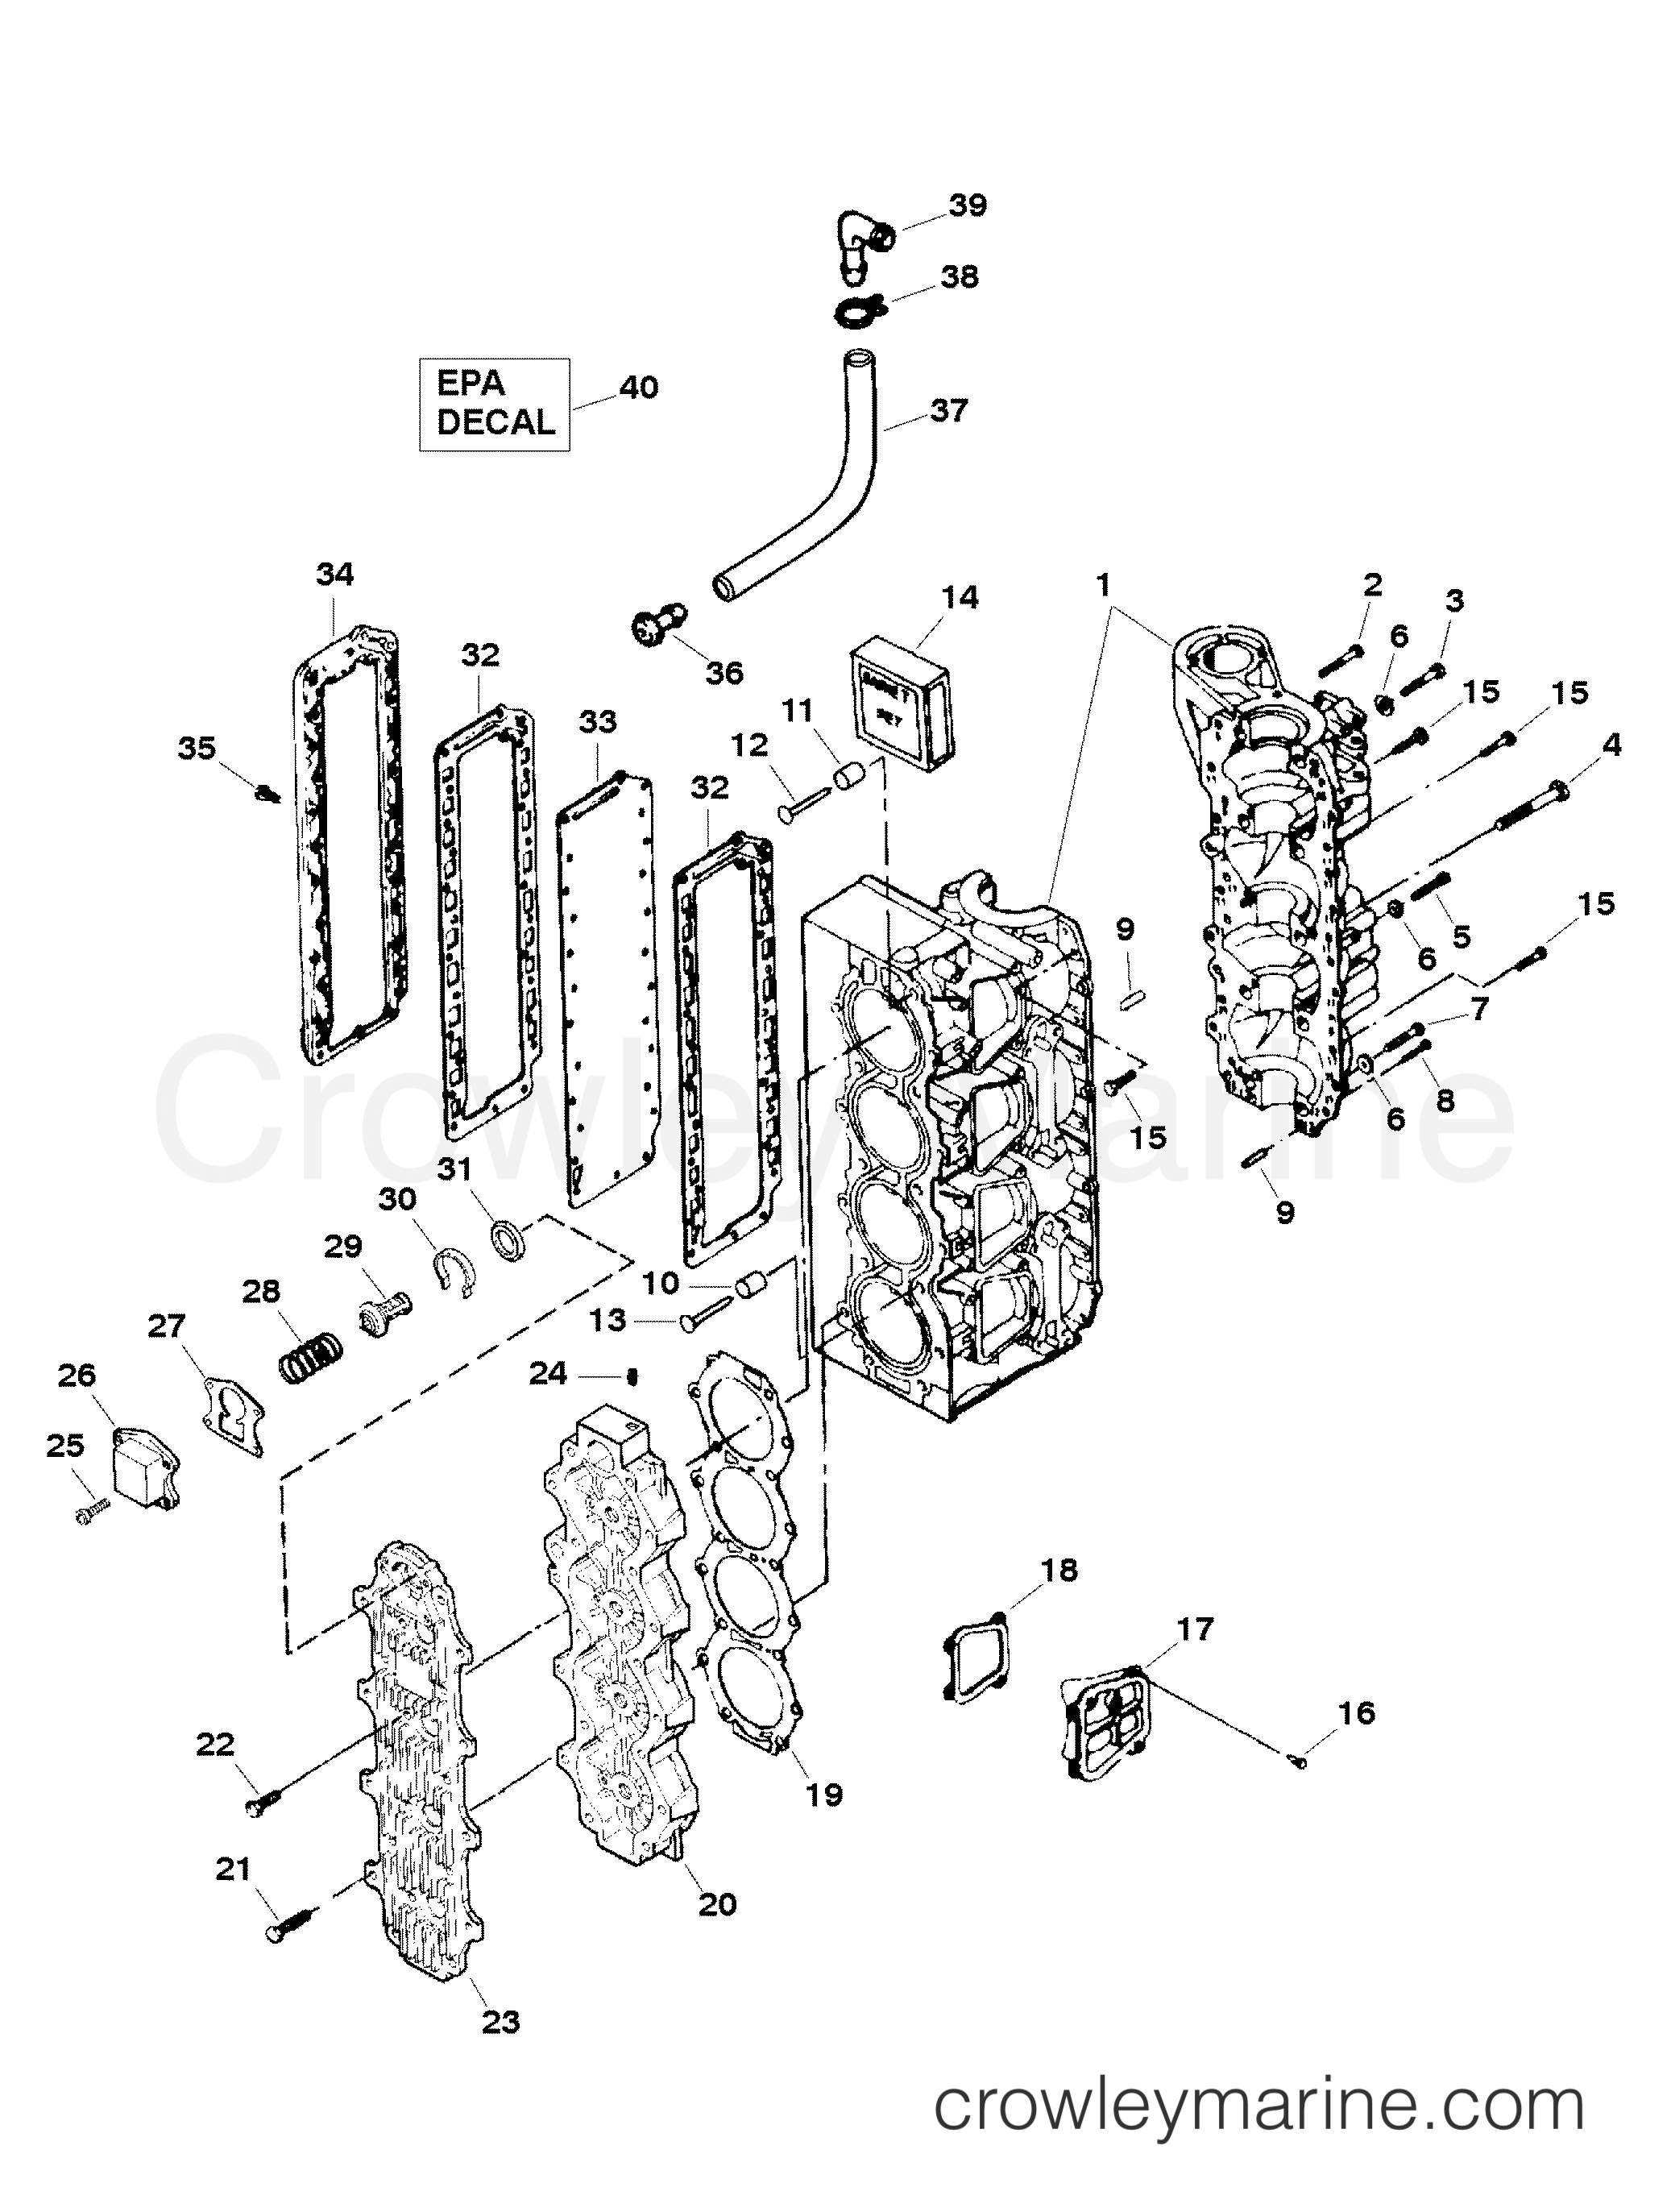 Cylinder block assembly 1998 force outboard 120 for Force outboard motor parts diagram